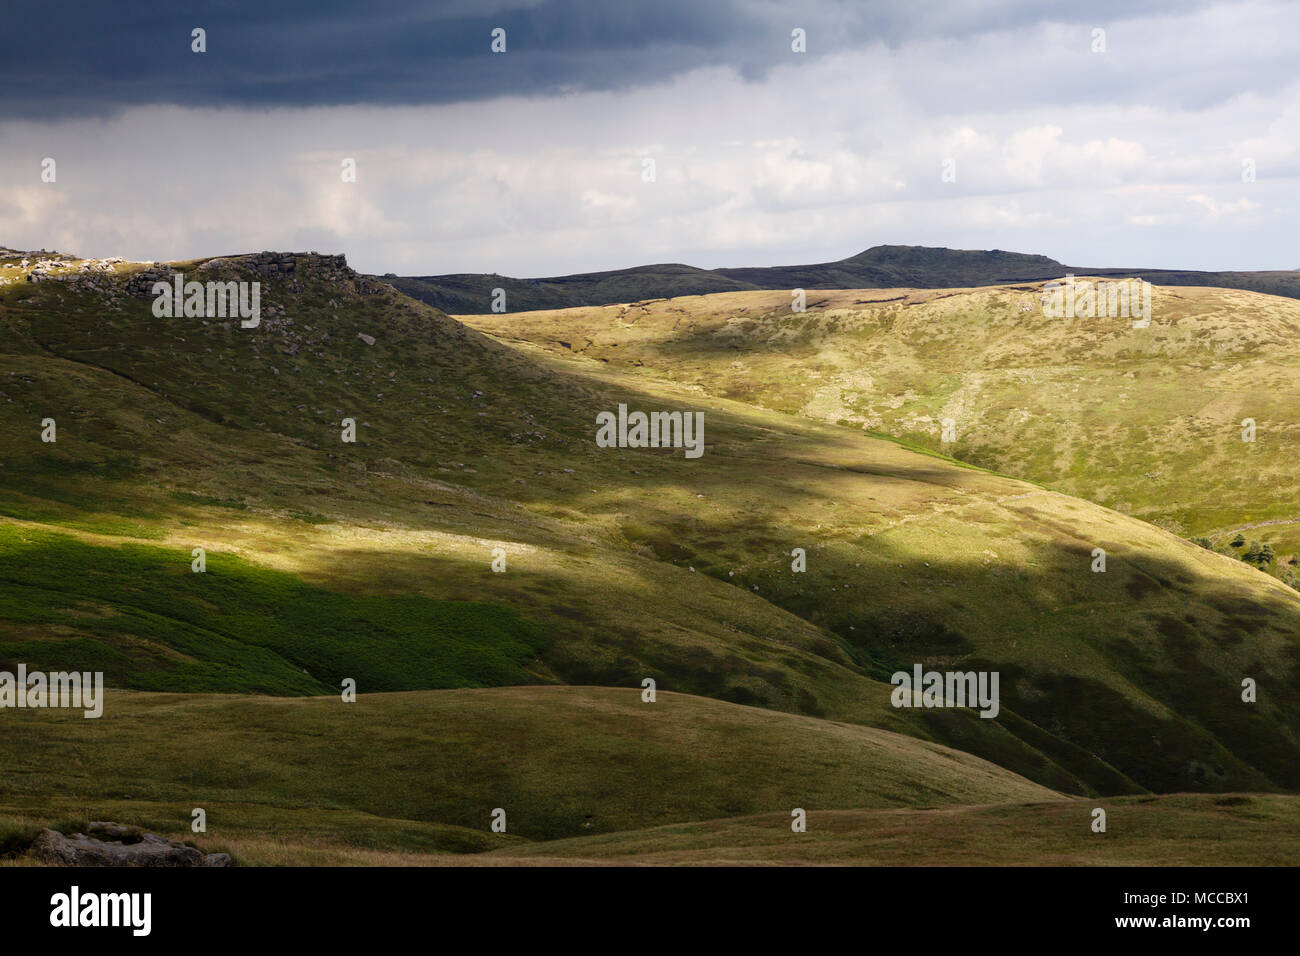 View to Edale Head and Grindslow Knoll from Swine's Back, Kinder Scout, Peak District National Park, Derbyshire - Stock Image